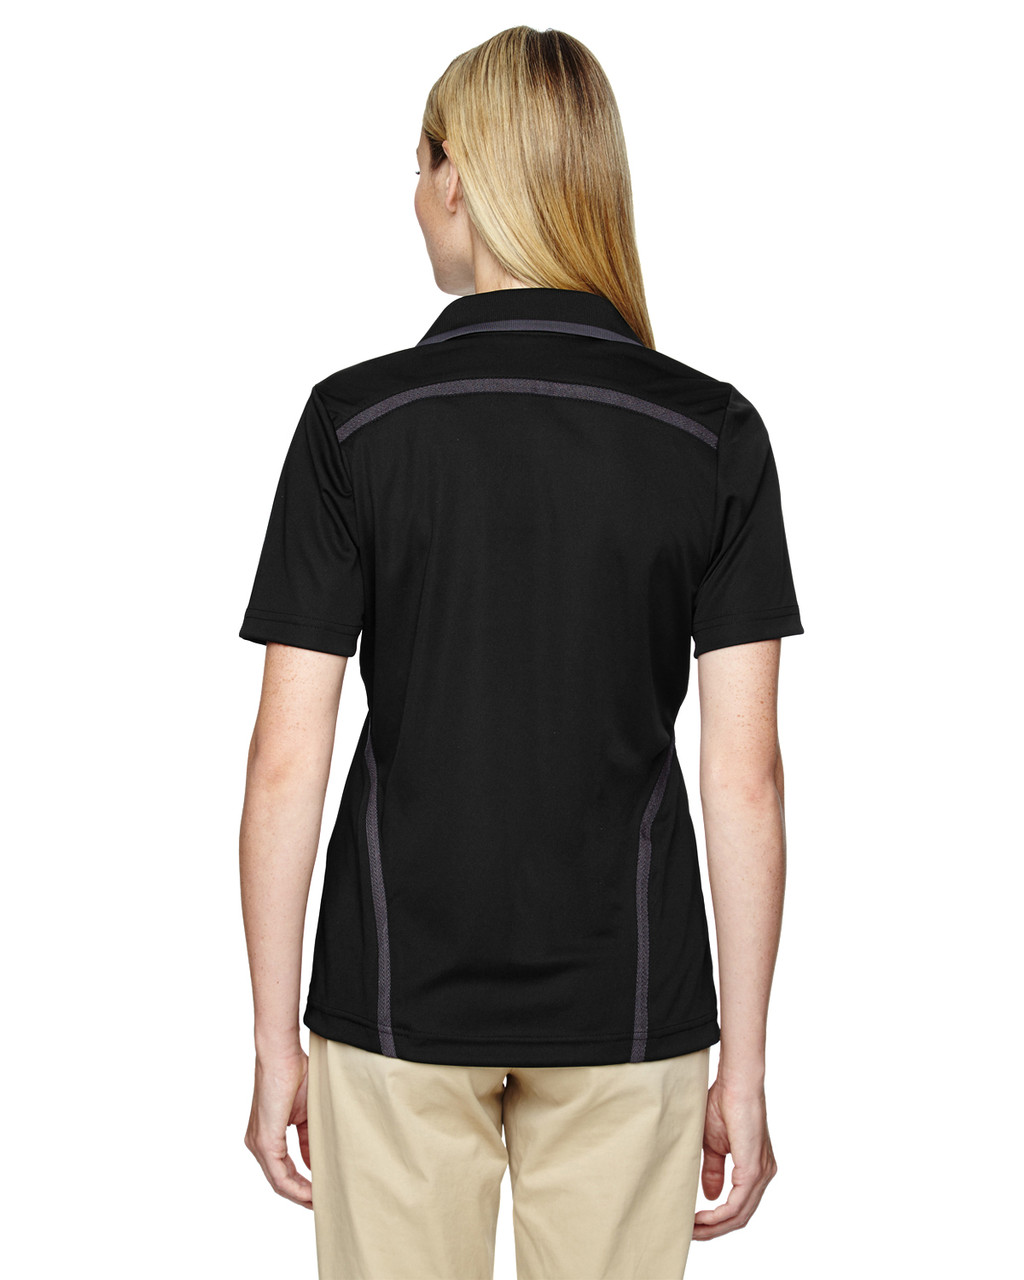 Black - Back, 75118 Ash City - Extreme Eperformance Propel Interlock Polo Shirt with Contrast Tape | BlankClothing.ca